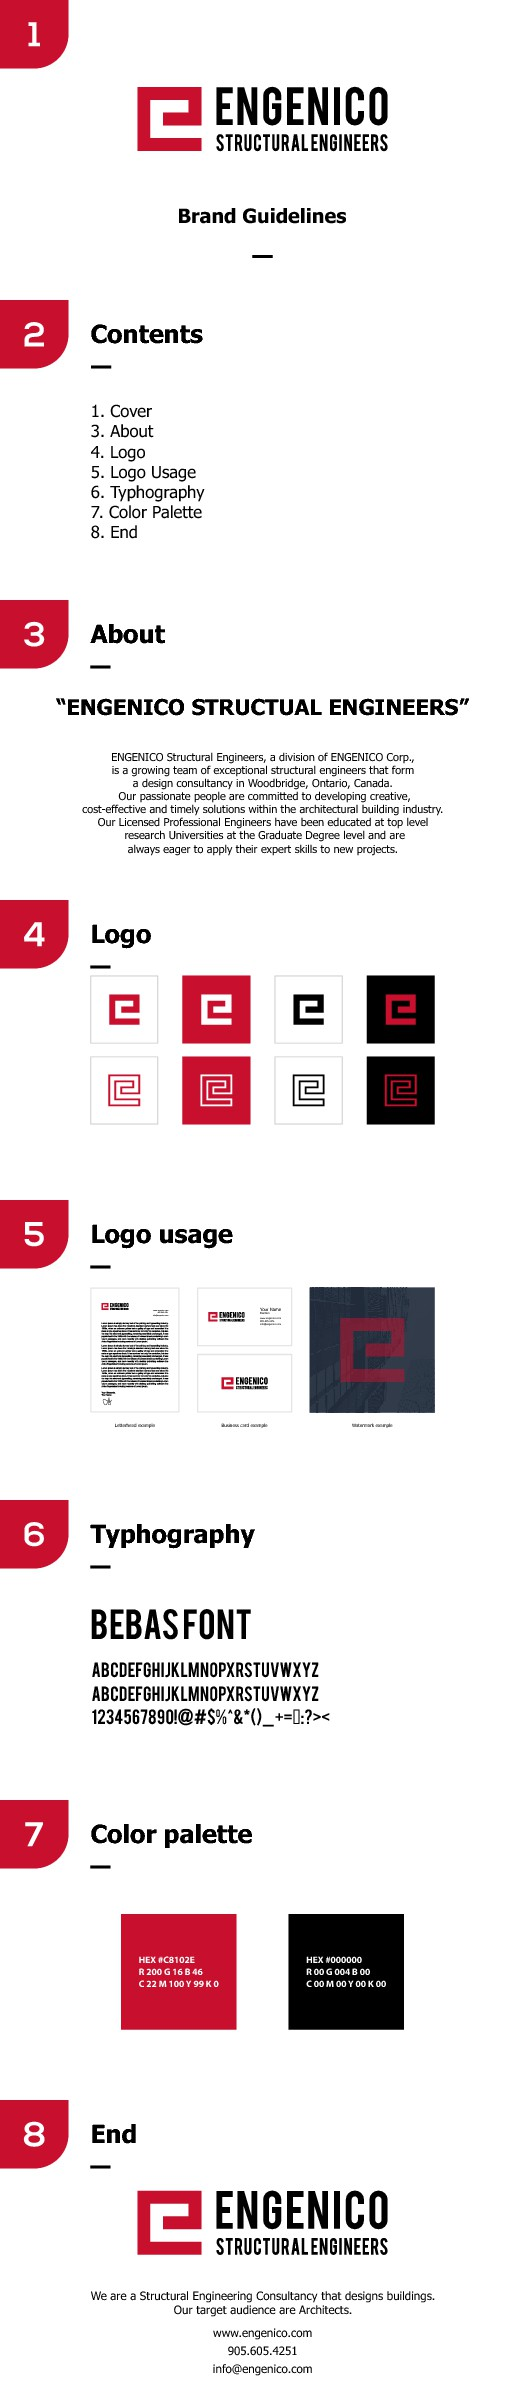 Design a Simple, Clean, Professional Logo for Structural Engineer